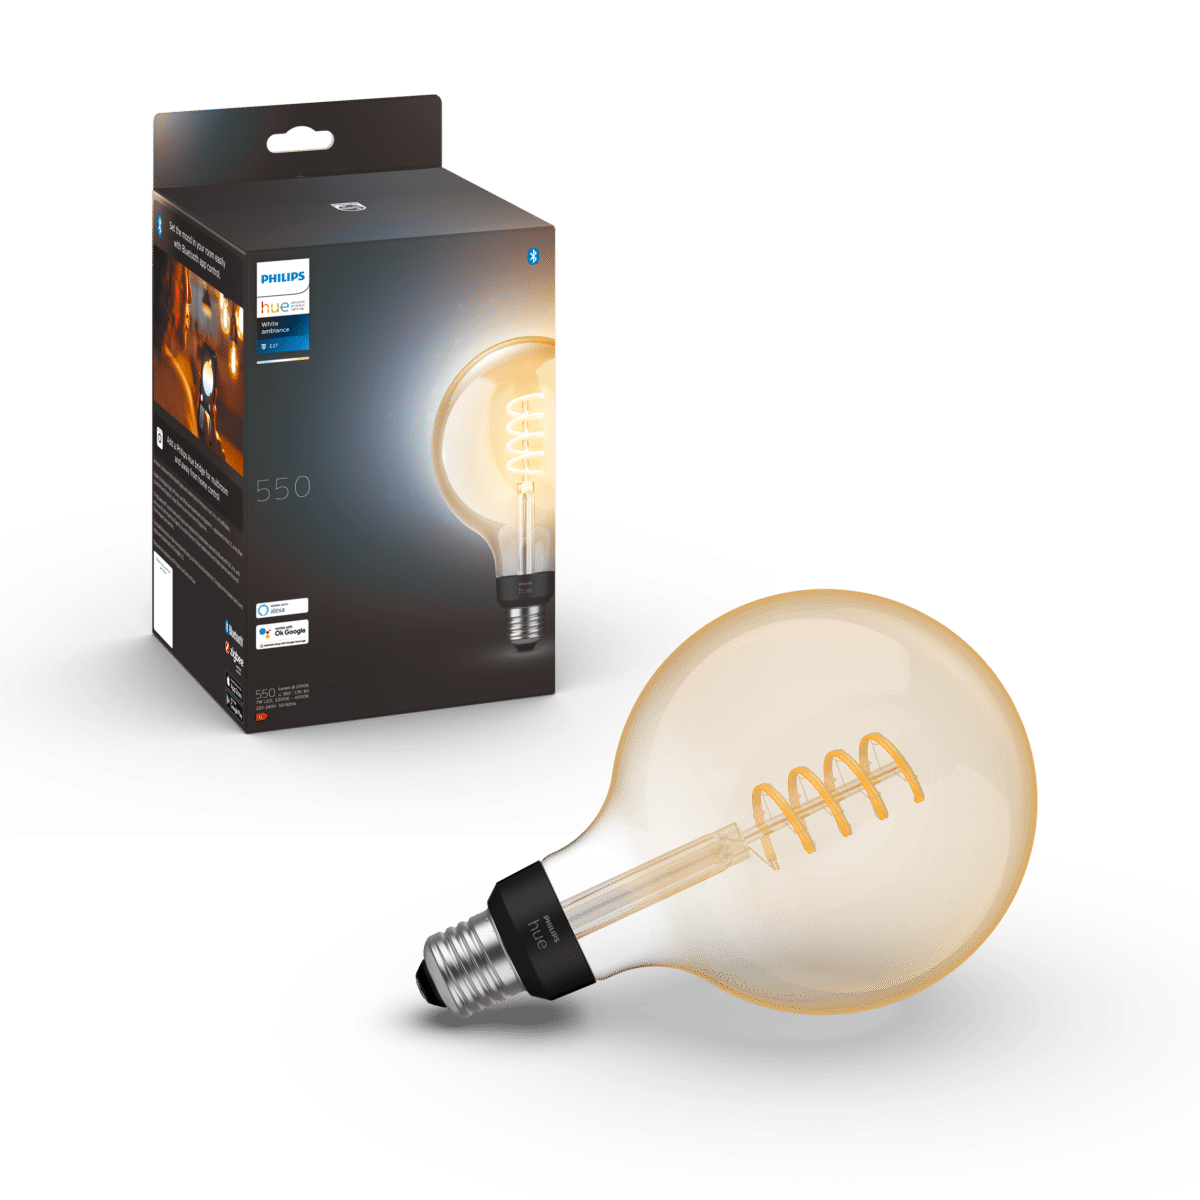 Philips Hue Filament White Ambiance bulb product